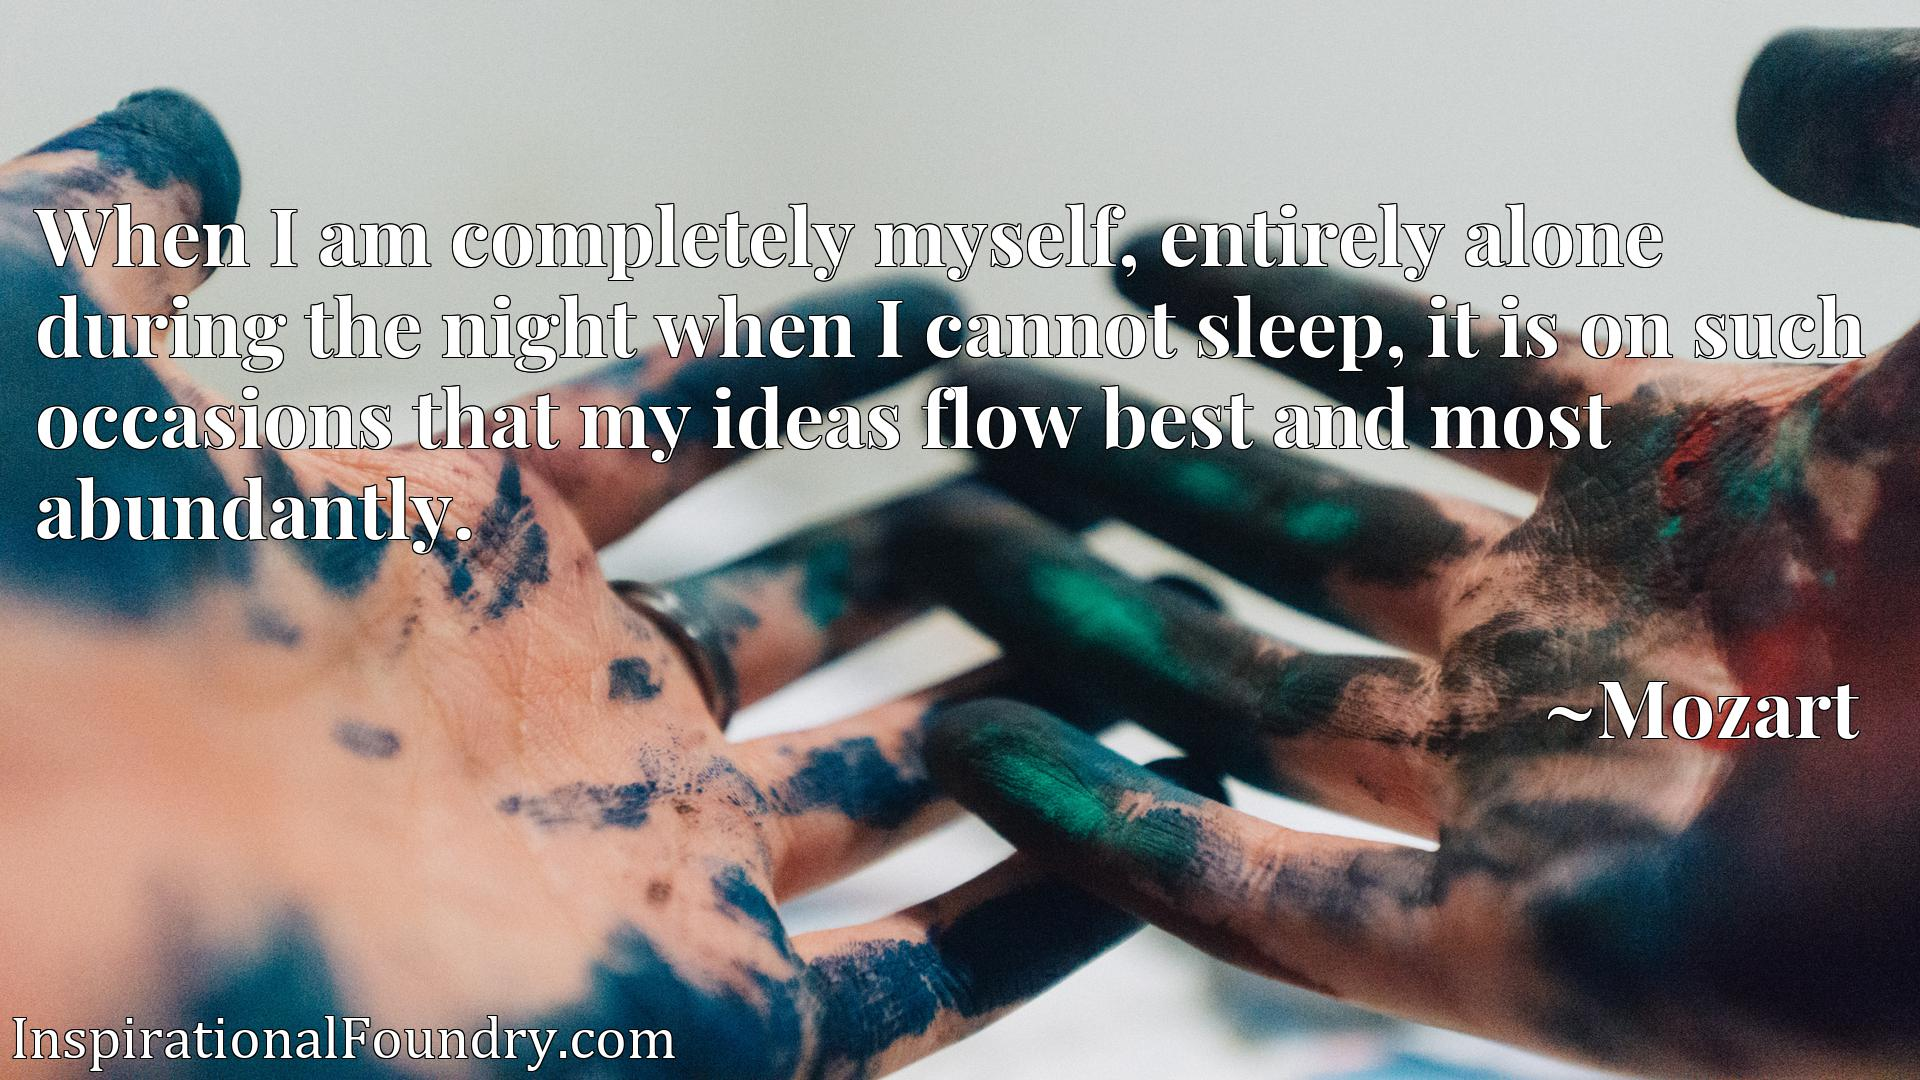 When I am completely myself, entirely alone during the night when I cannot sleep, it is on such occasions that my ideas flow best and most abundantly.